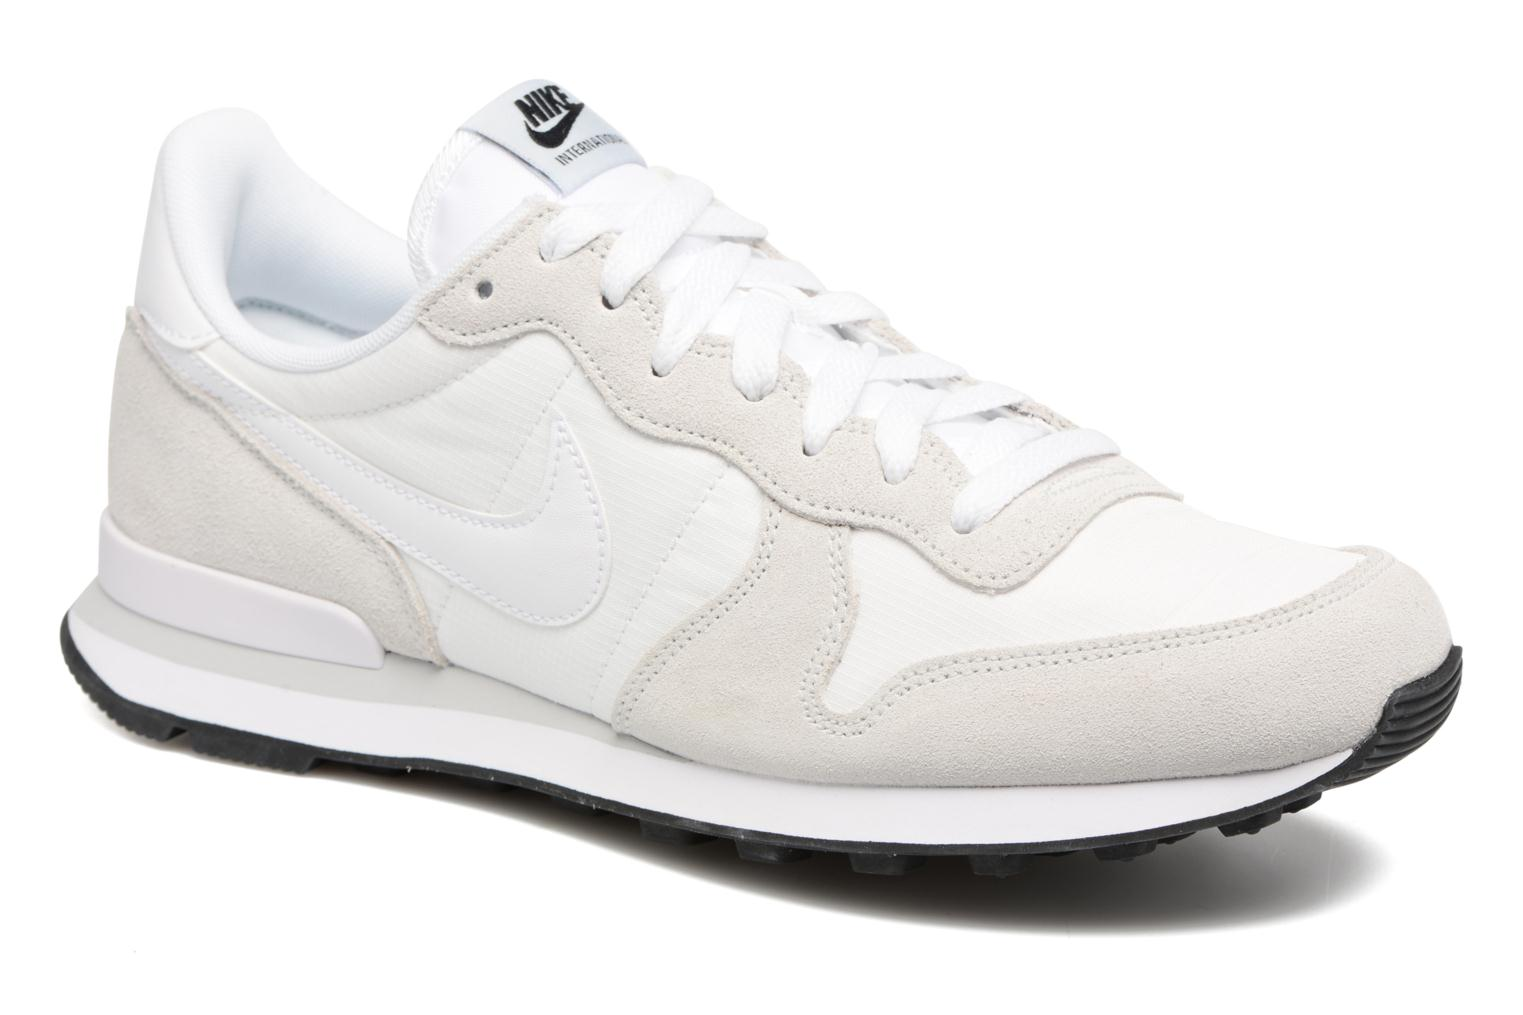 Nike Internationalist Summit White/White-Off White